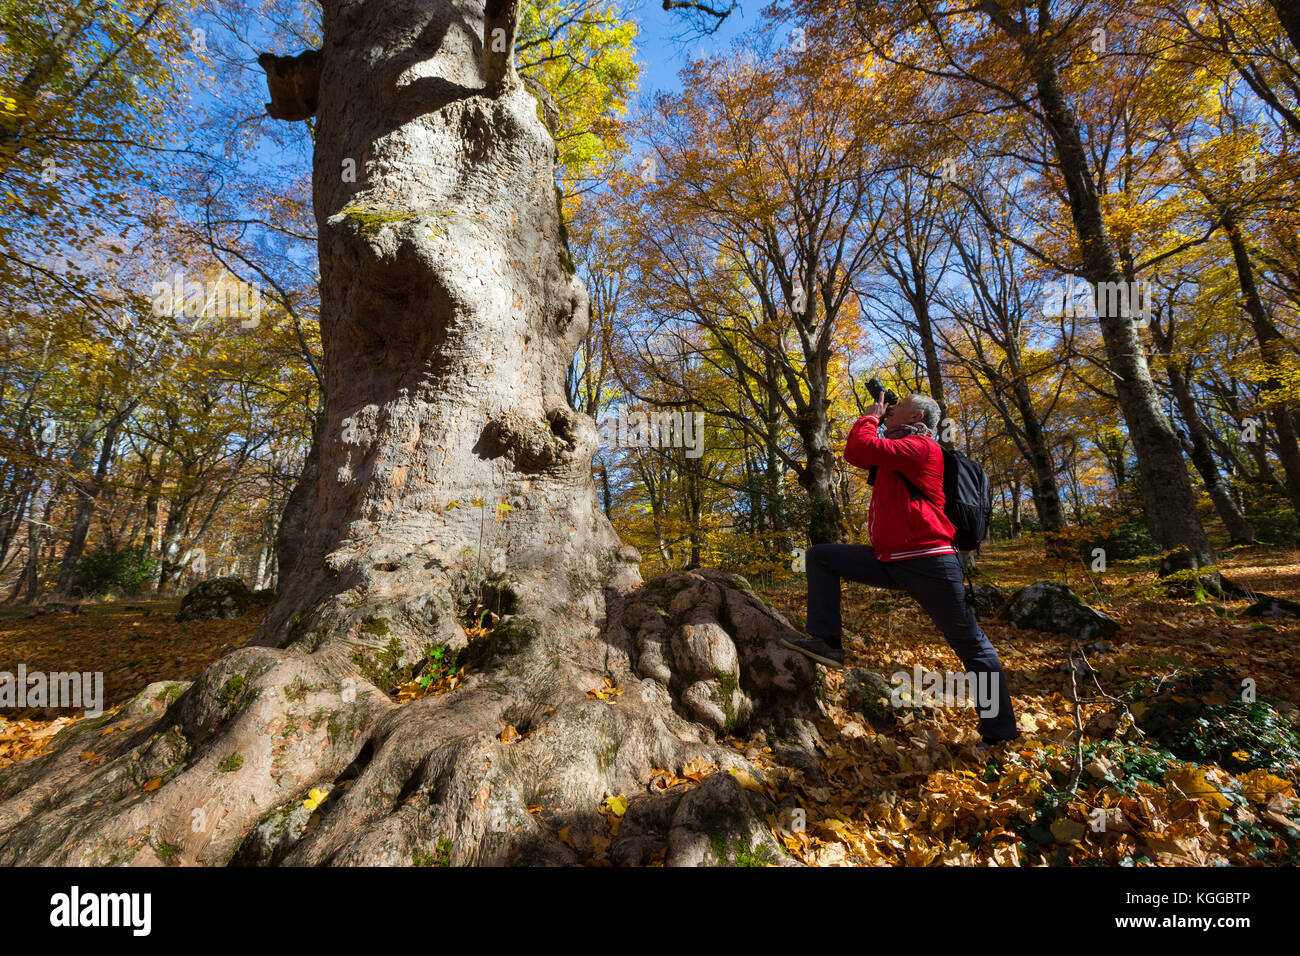 Abruzzo (Italy) - Saint Antonio wood in autumn time. Fall colors. - Stock Image